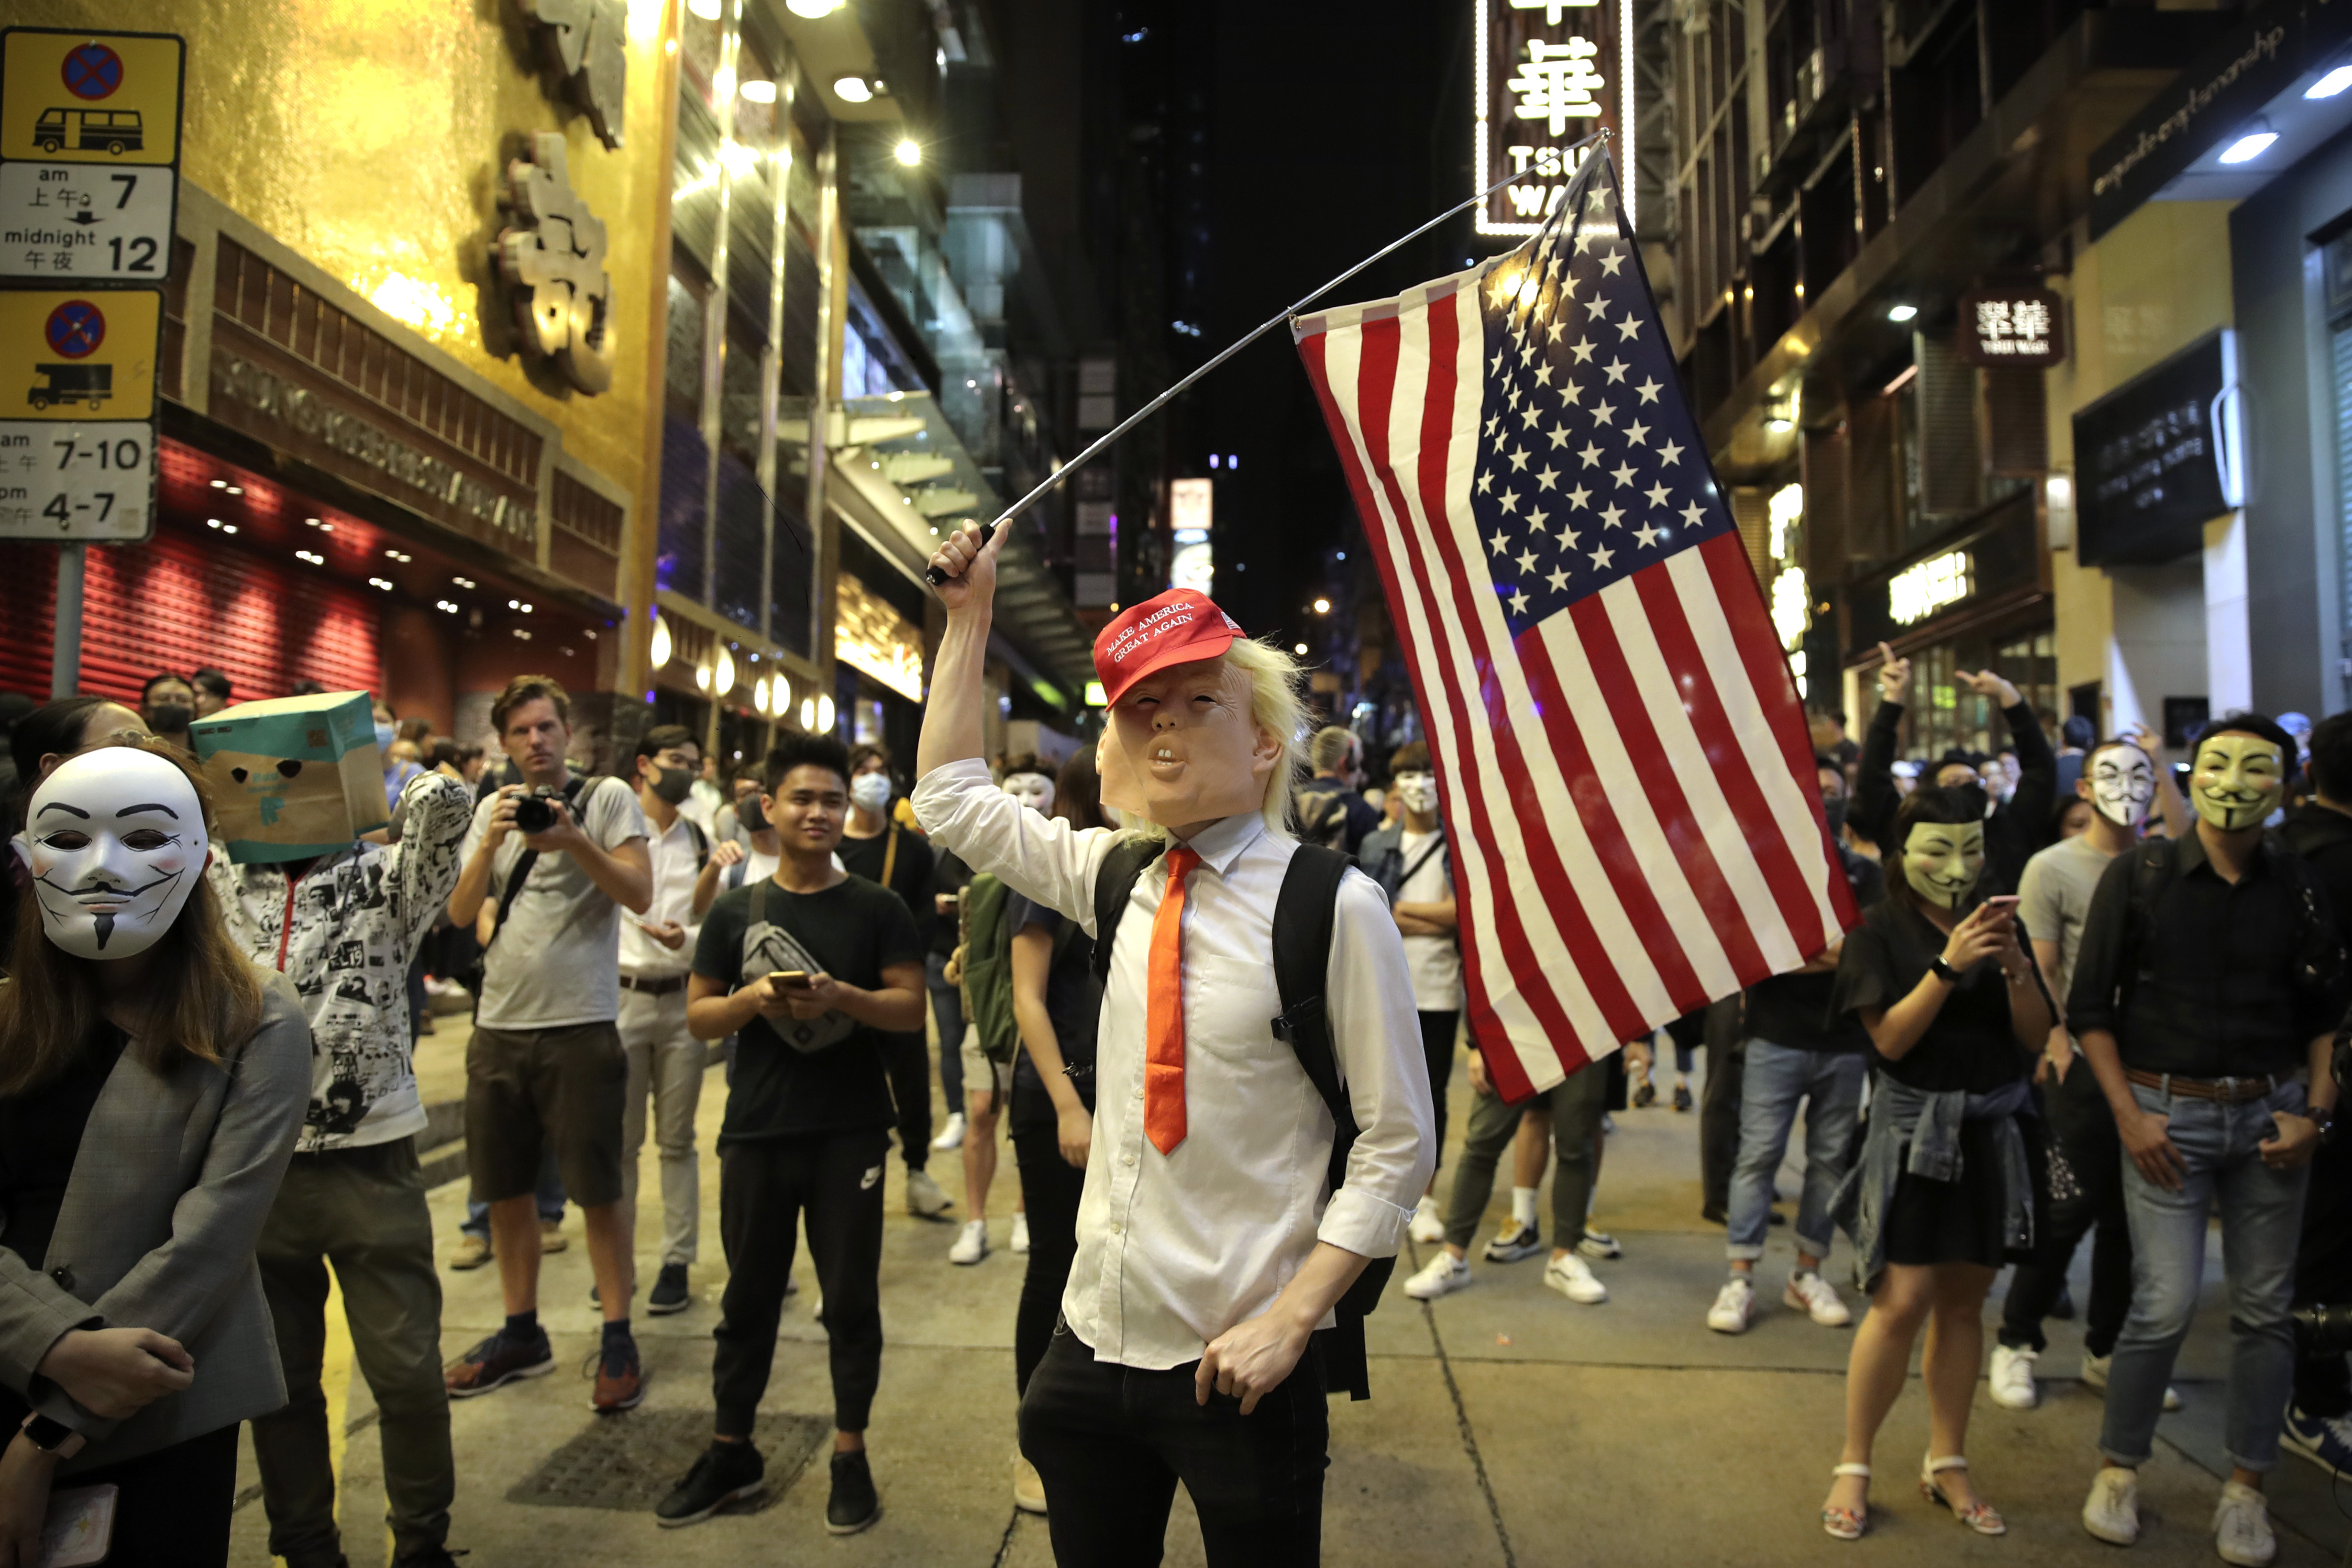 A person dressed as President Donald Trump waves an American flag as they stand on a street in Hong Kong on Oct. 31.